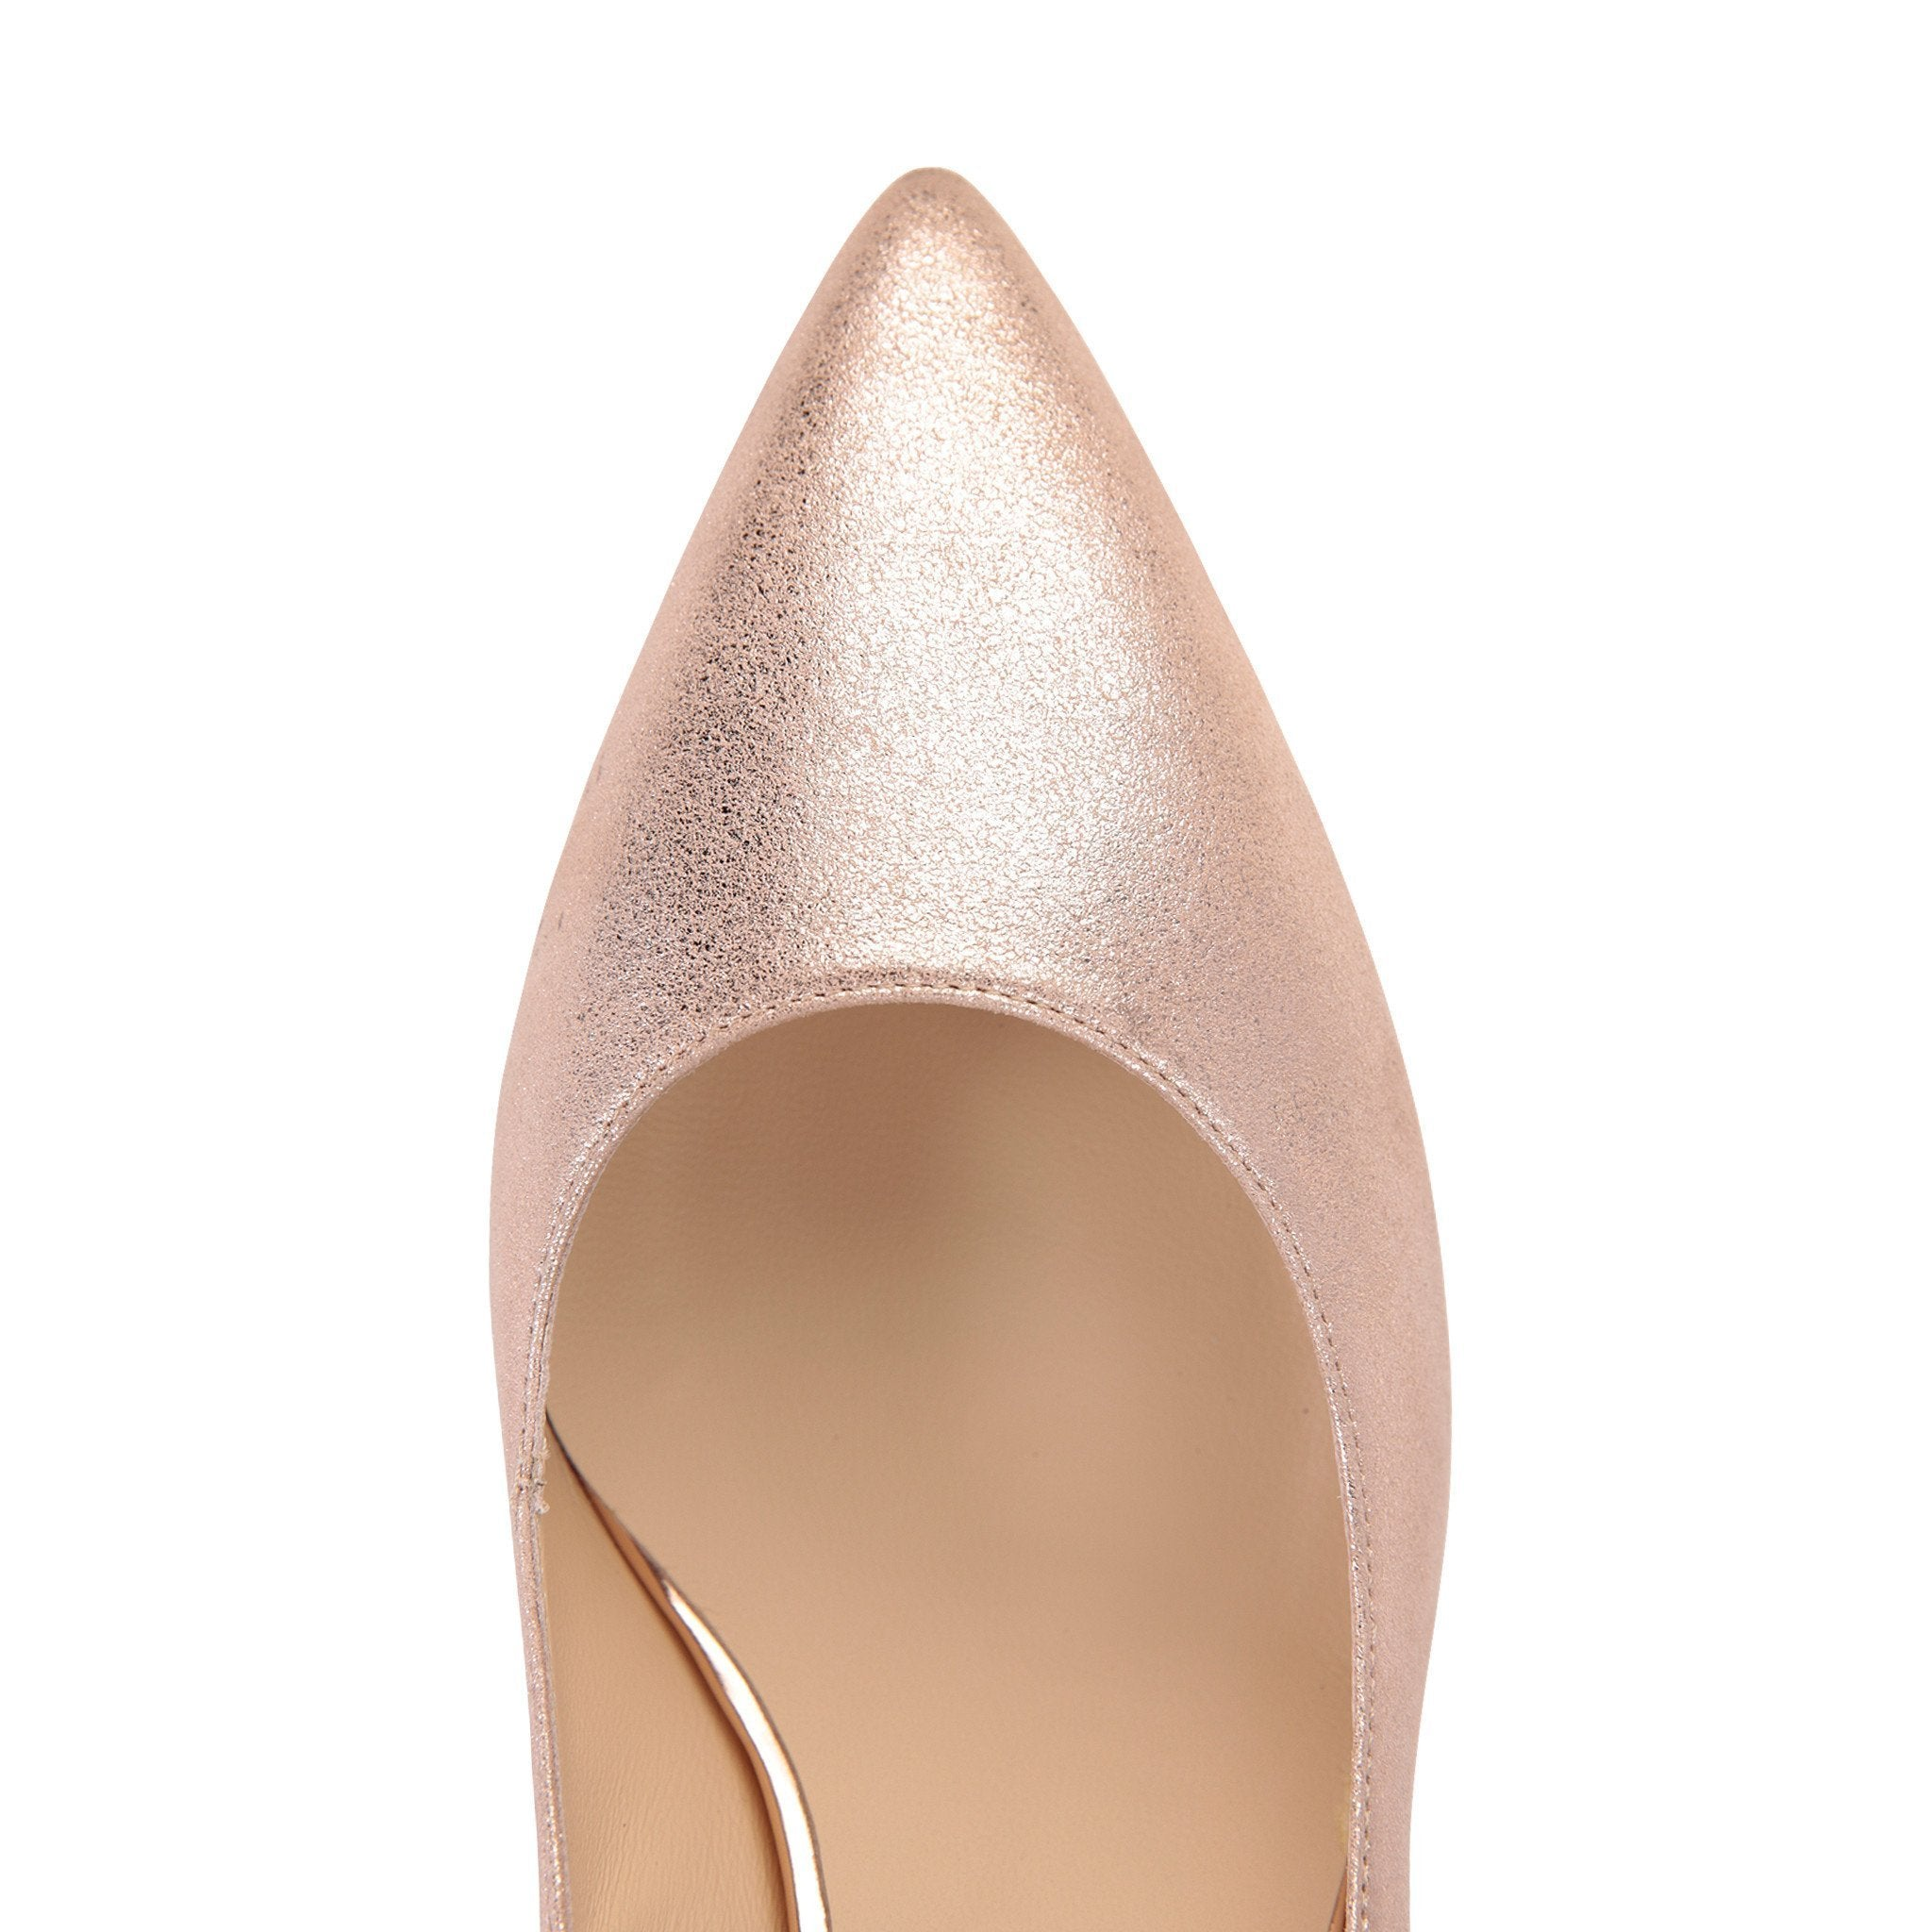 TRENTO - Burma Rose Gold + Metallic Light Copper - VIAJIYU Shoes